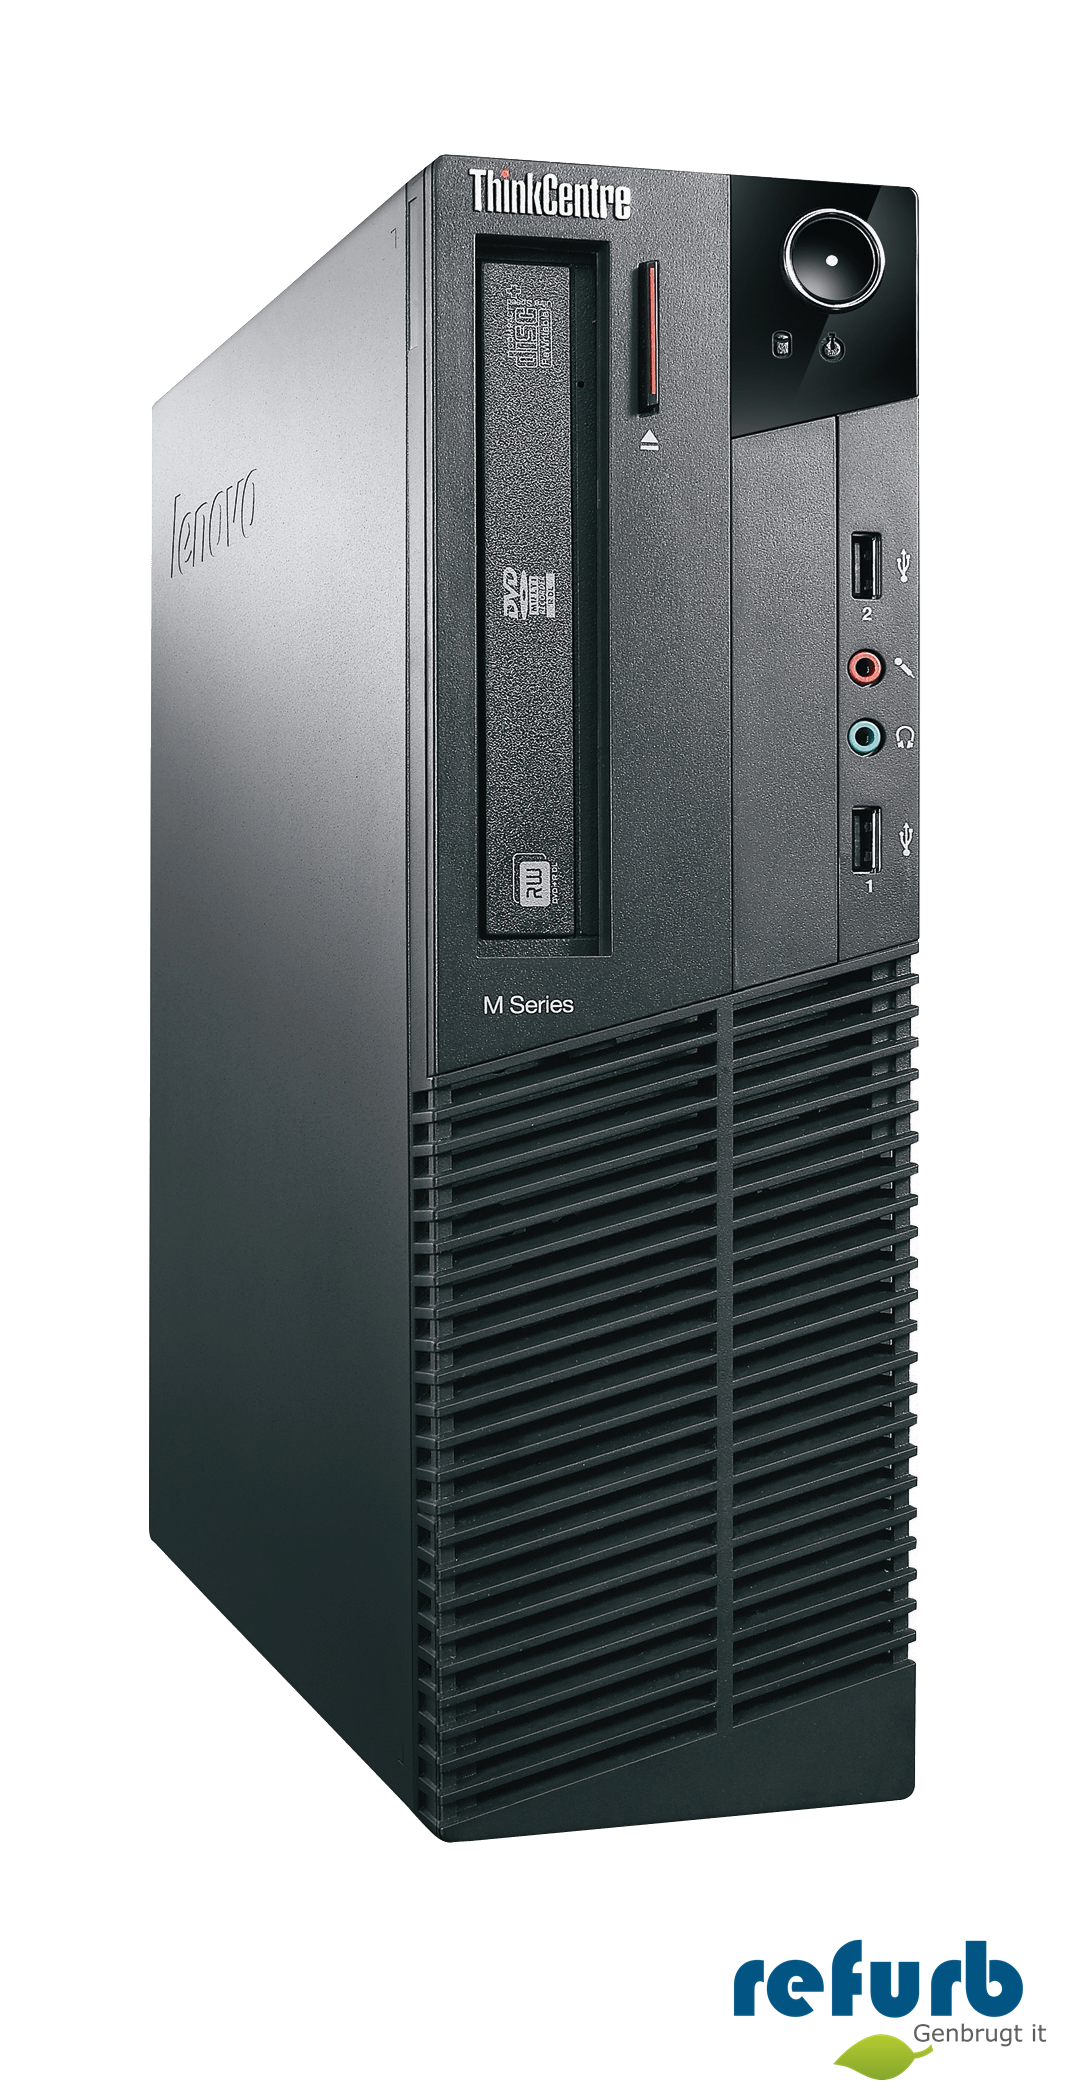 Lenovo Lenovo thinkcentre m81 sff på refurb